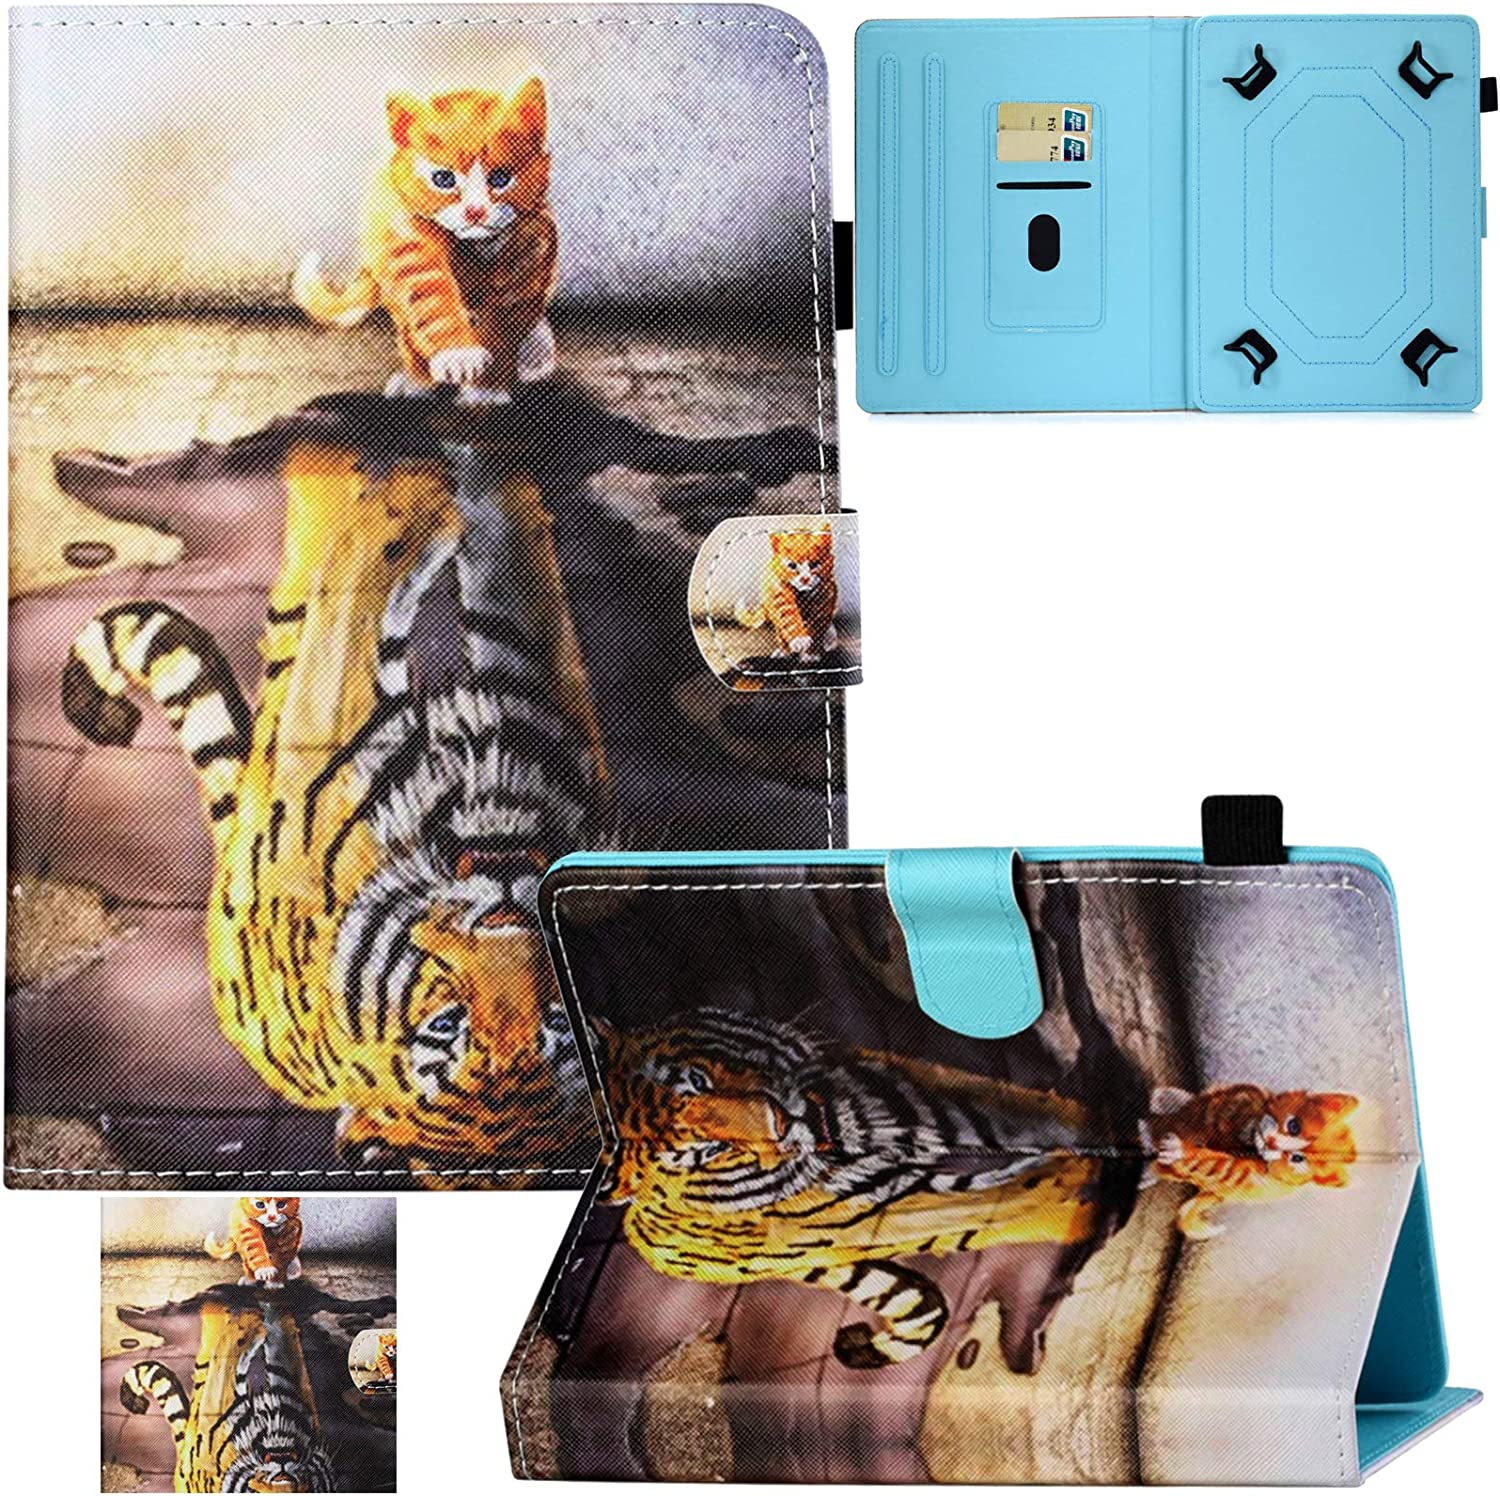 Universal Case for 7.5-8.5 Inch Tablet,Artyond PU Leather Card Slot Stand Case for iPad Mini 1 2 3 4 5/Galaxy Tab 8.0/Kindle Fire HD8/Huawei 8.0